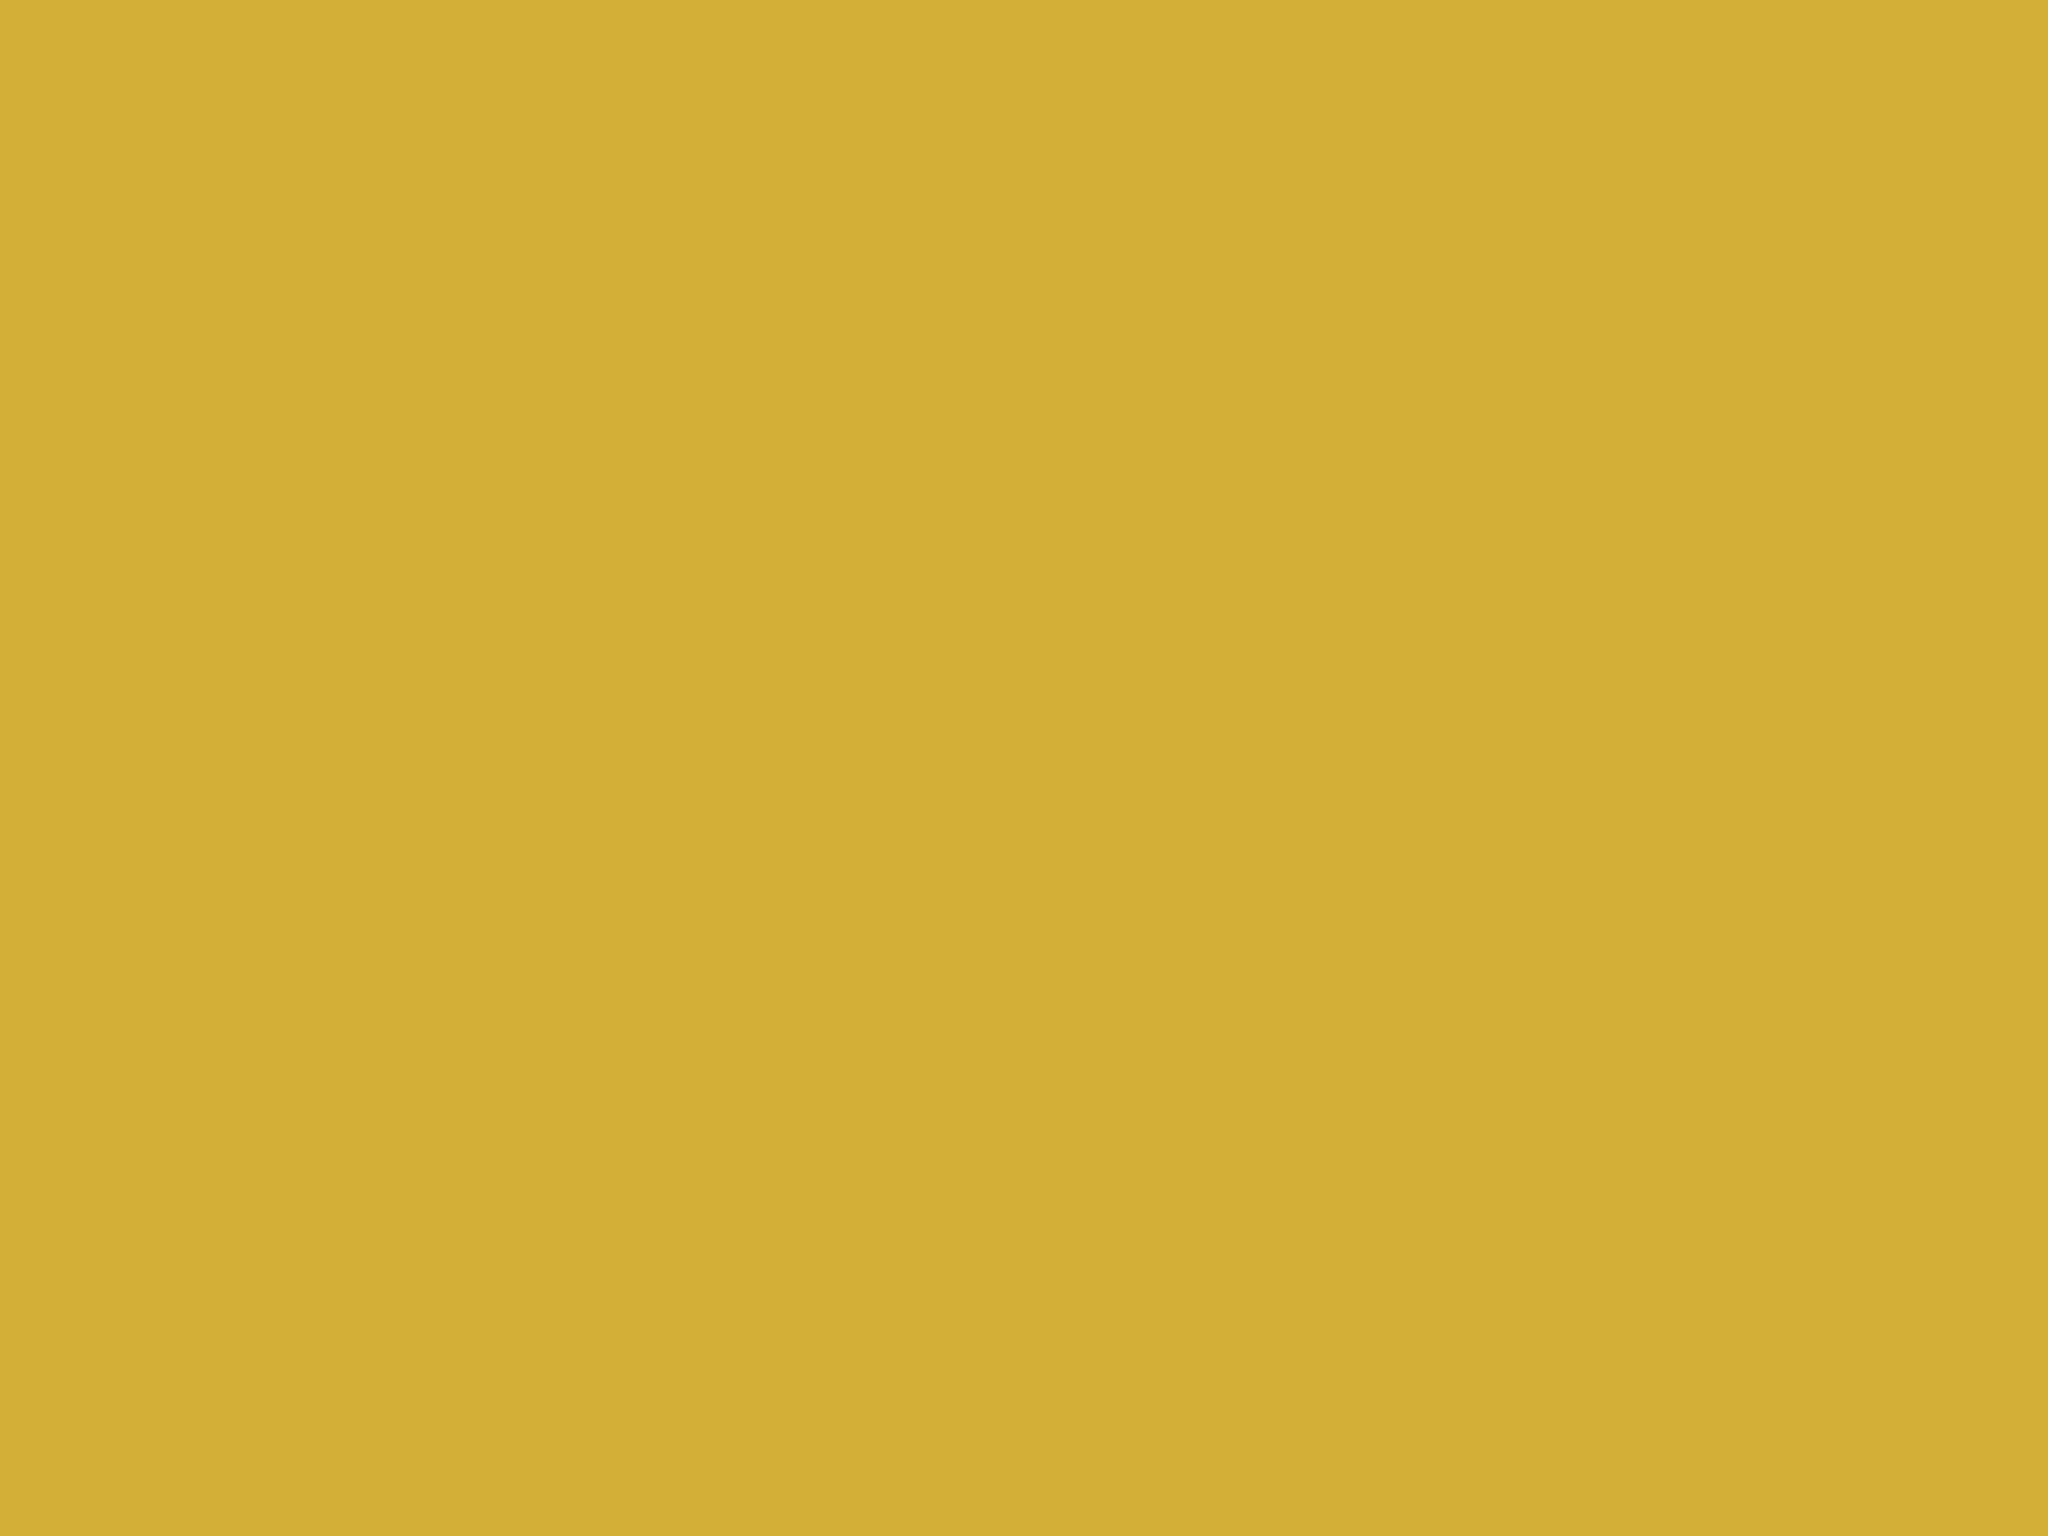 2048x1536 Gold Metallic Solid Color Background